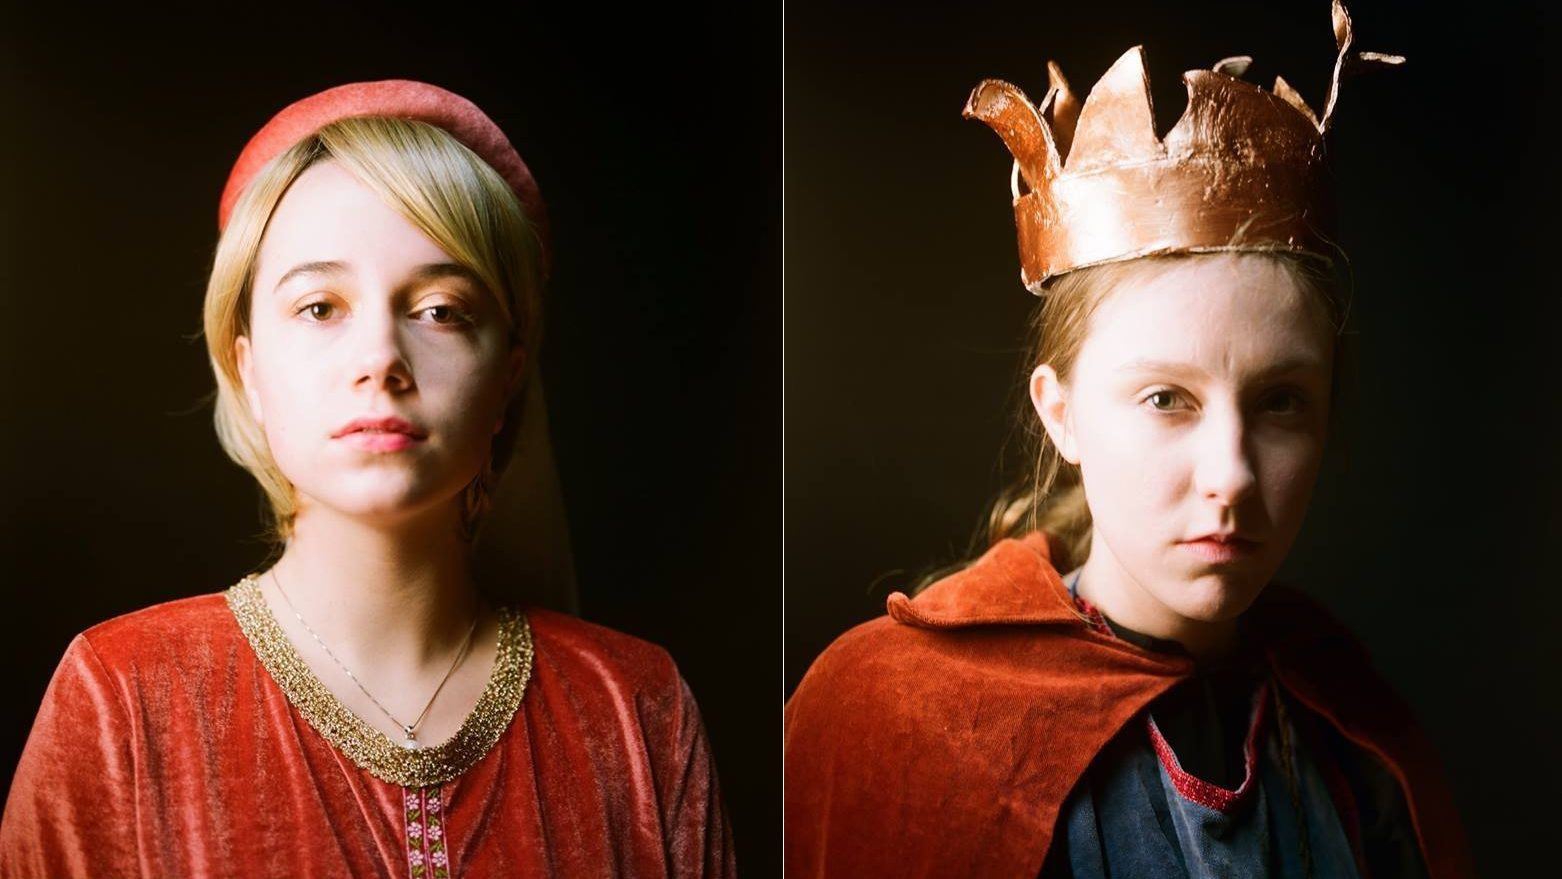 Photo portraits of 'Matilda' and 'Henry IV' looking out to the camera. Henry IV wears a crumpled crown.